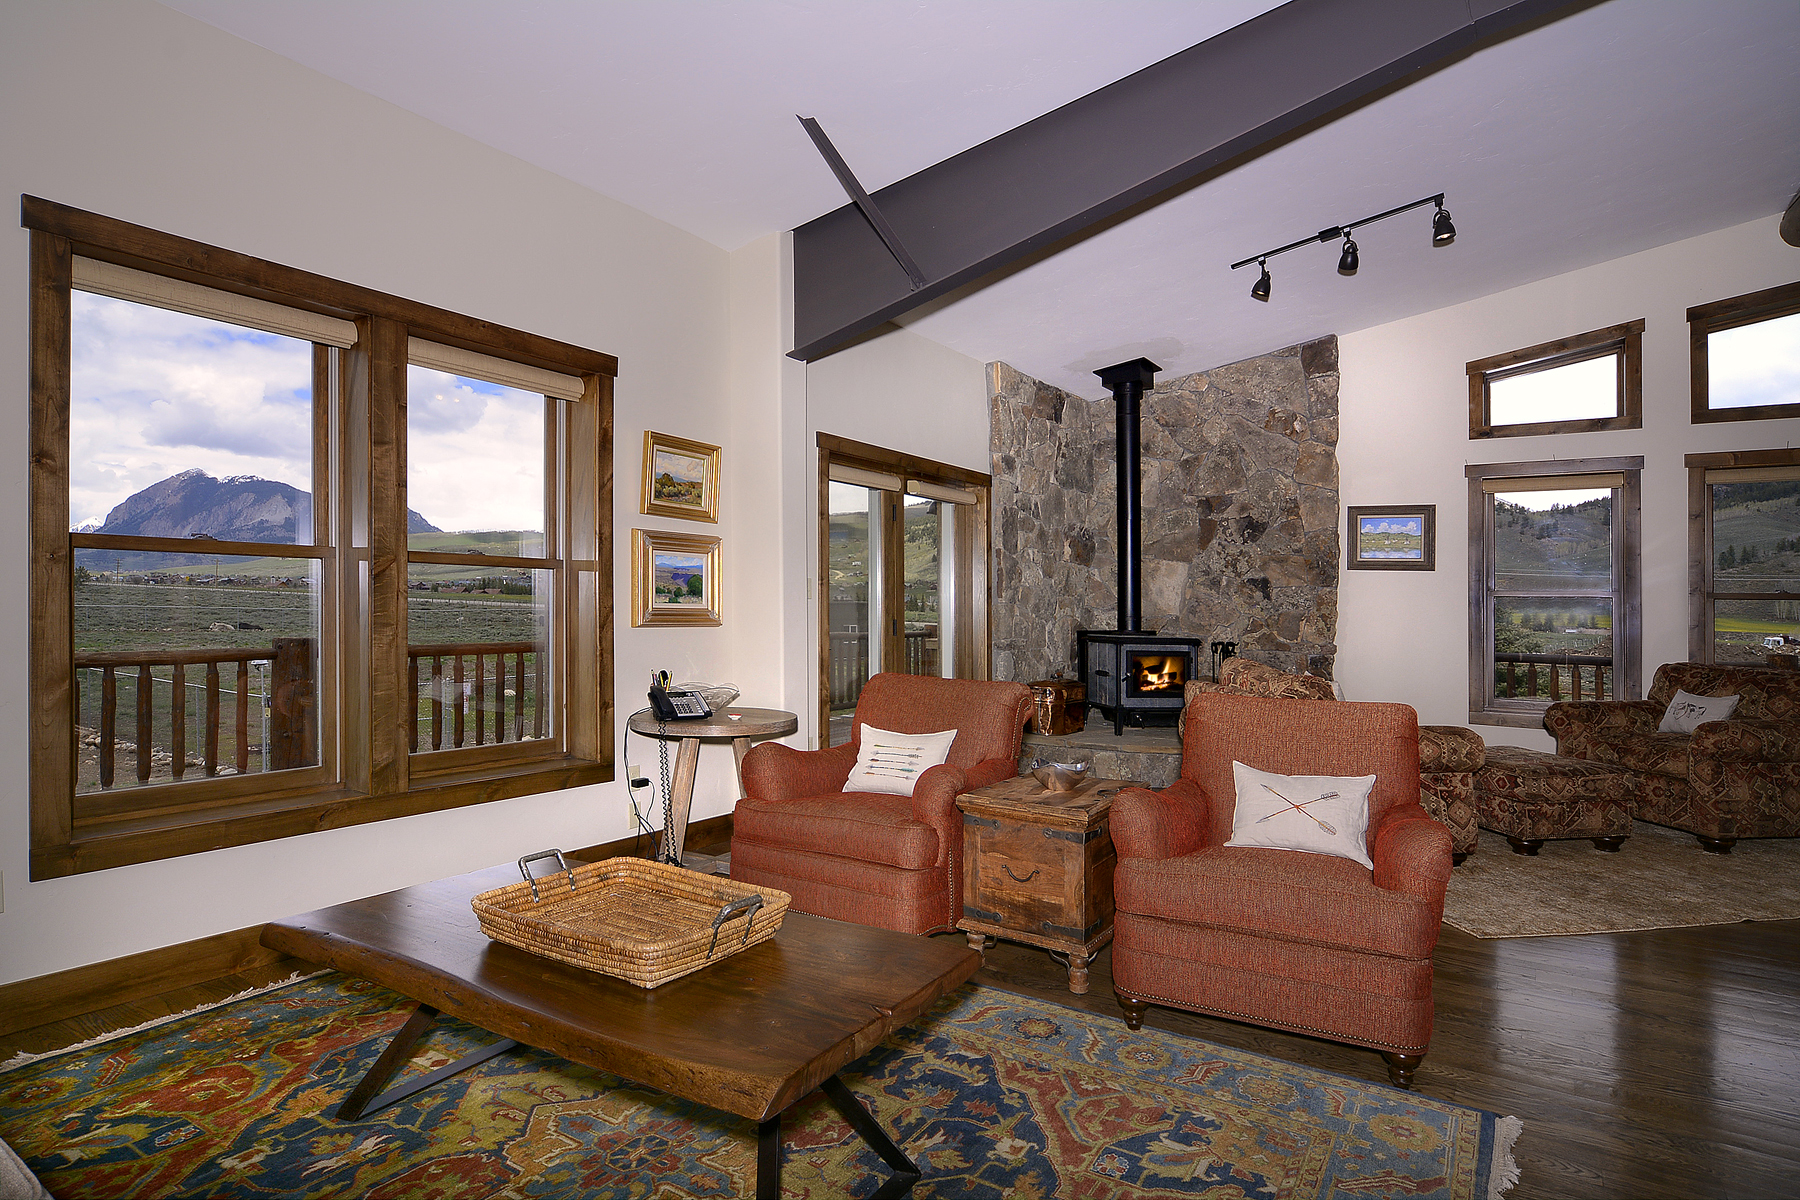 Single Family Home for Sale at Exquisite Horse Ranch 20143 Highway 135 Crested Butte, Colorado 81224 United States